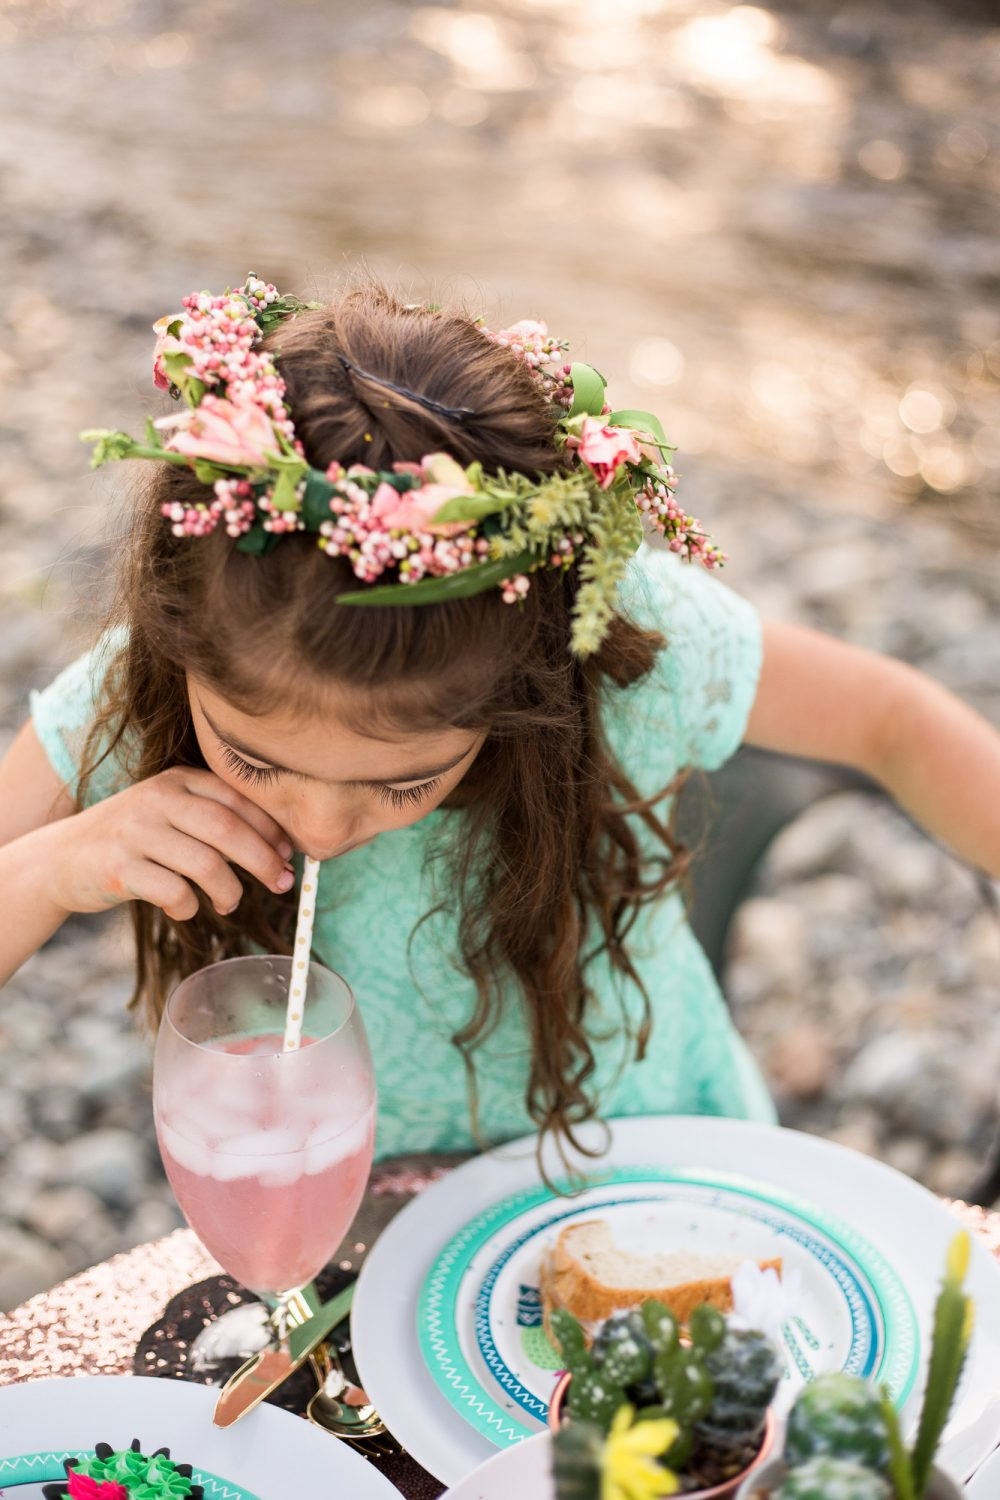 Learn how to make this sweet flower crown for your next tea party or girl's birthday party! Every girl deservers to feel like a princess!